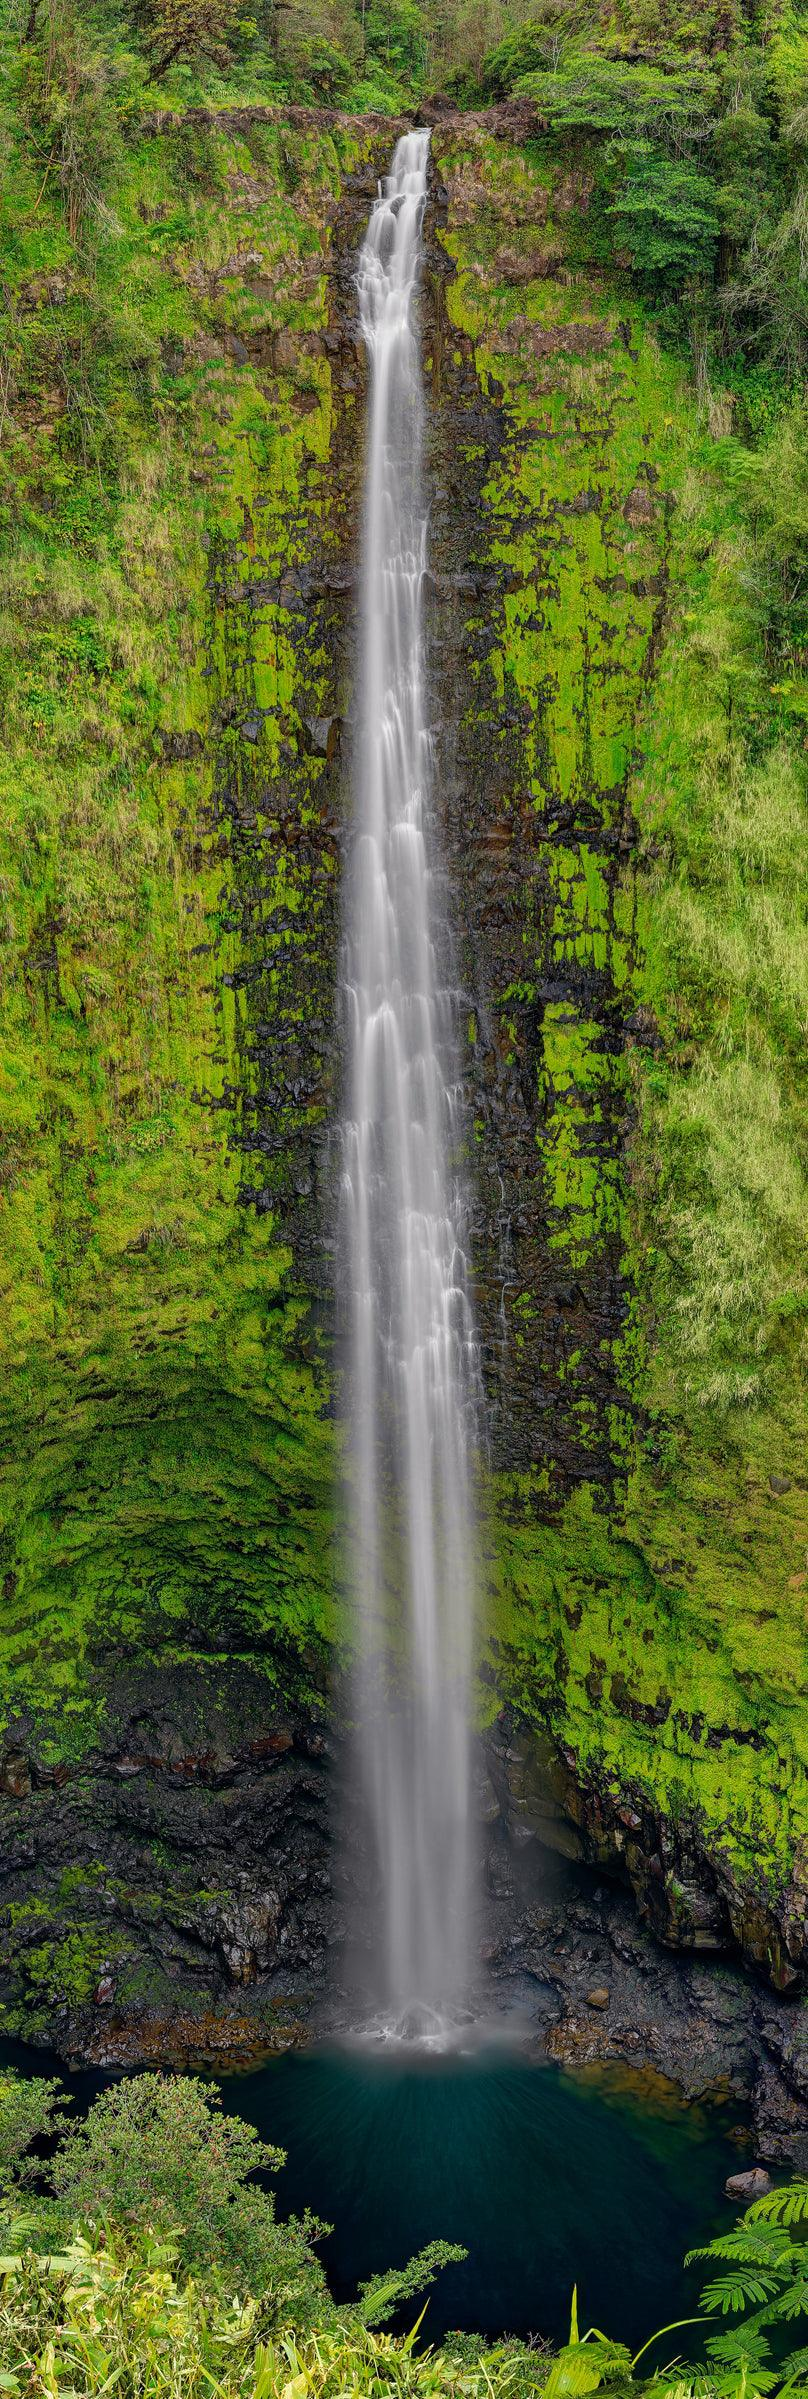 Waterfall pouring down a tall moss covered black rock cliff into a water hole below